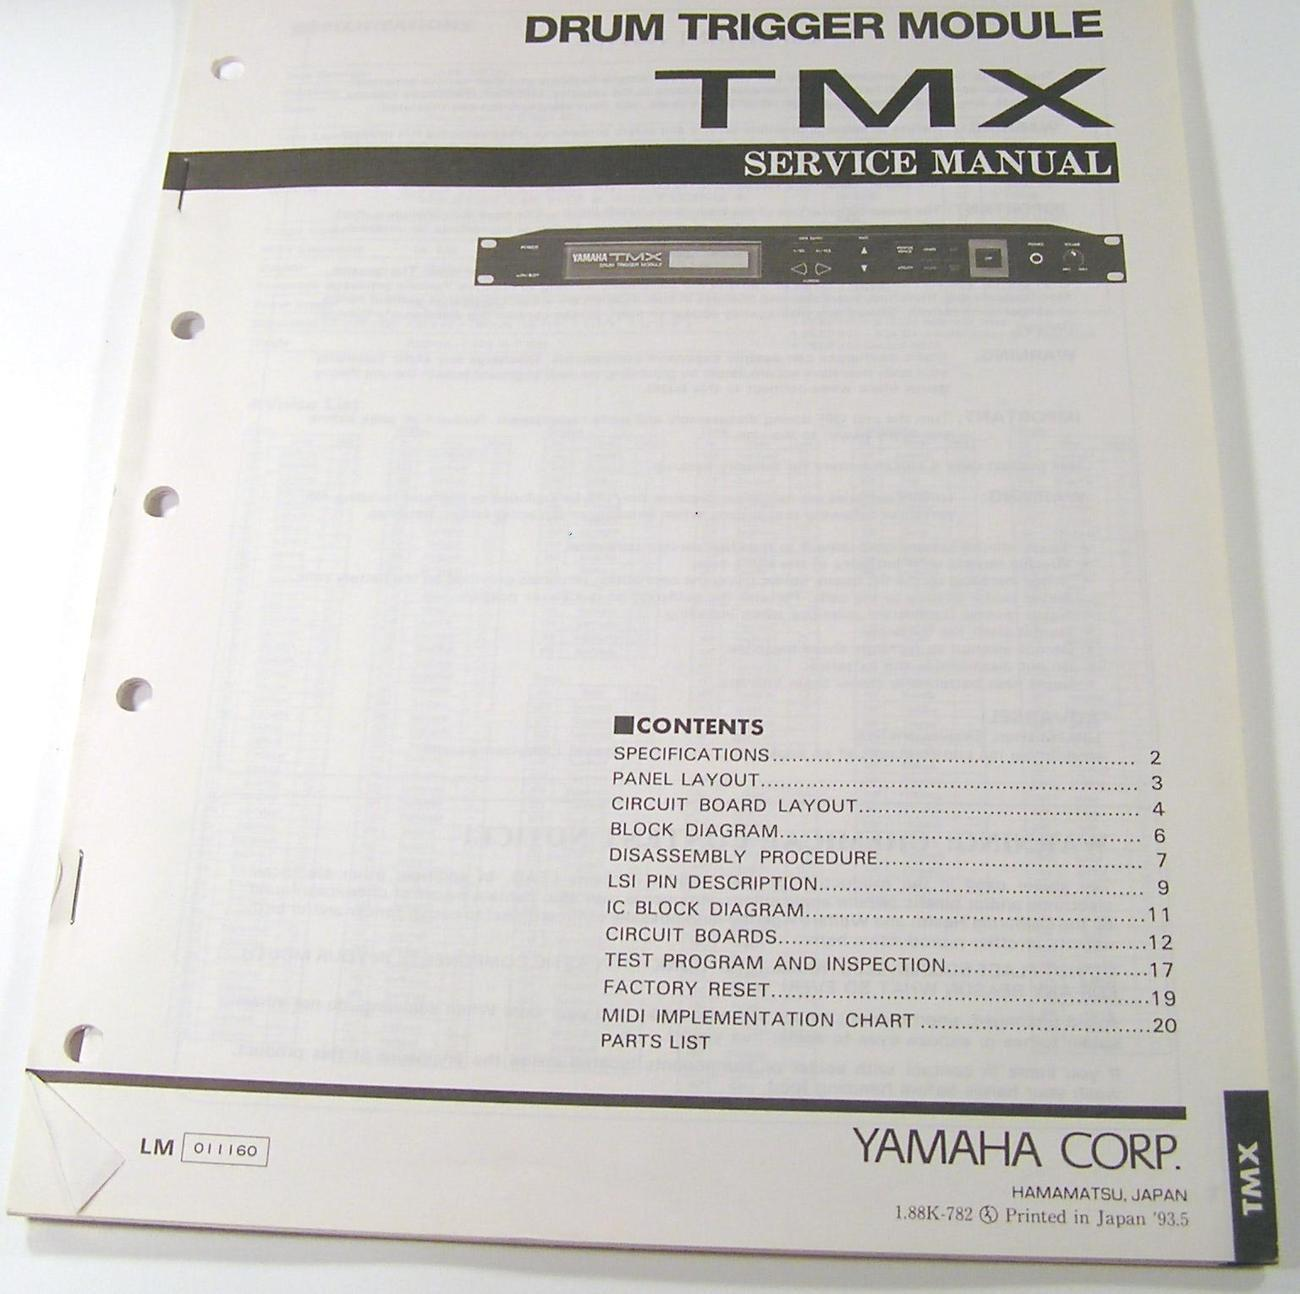 yamaha tmx drum trigger module service manual electronic drums. Black Bedroom Furniture Sets. Home Design Ideas